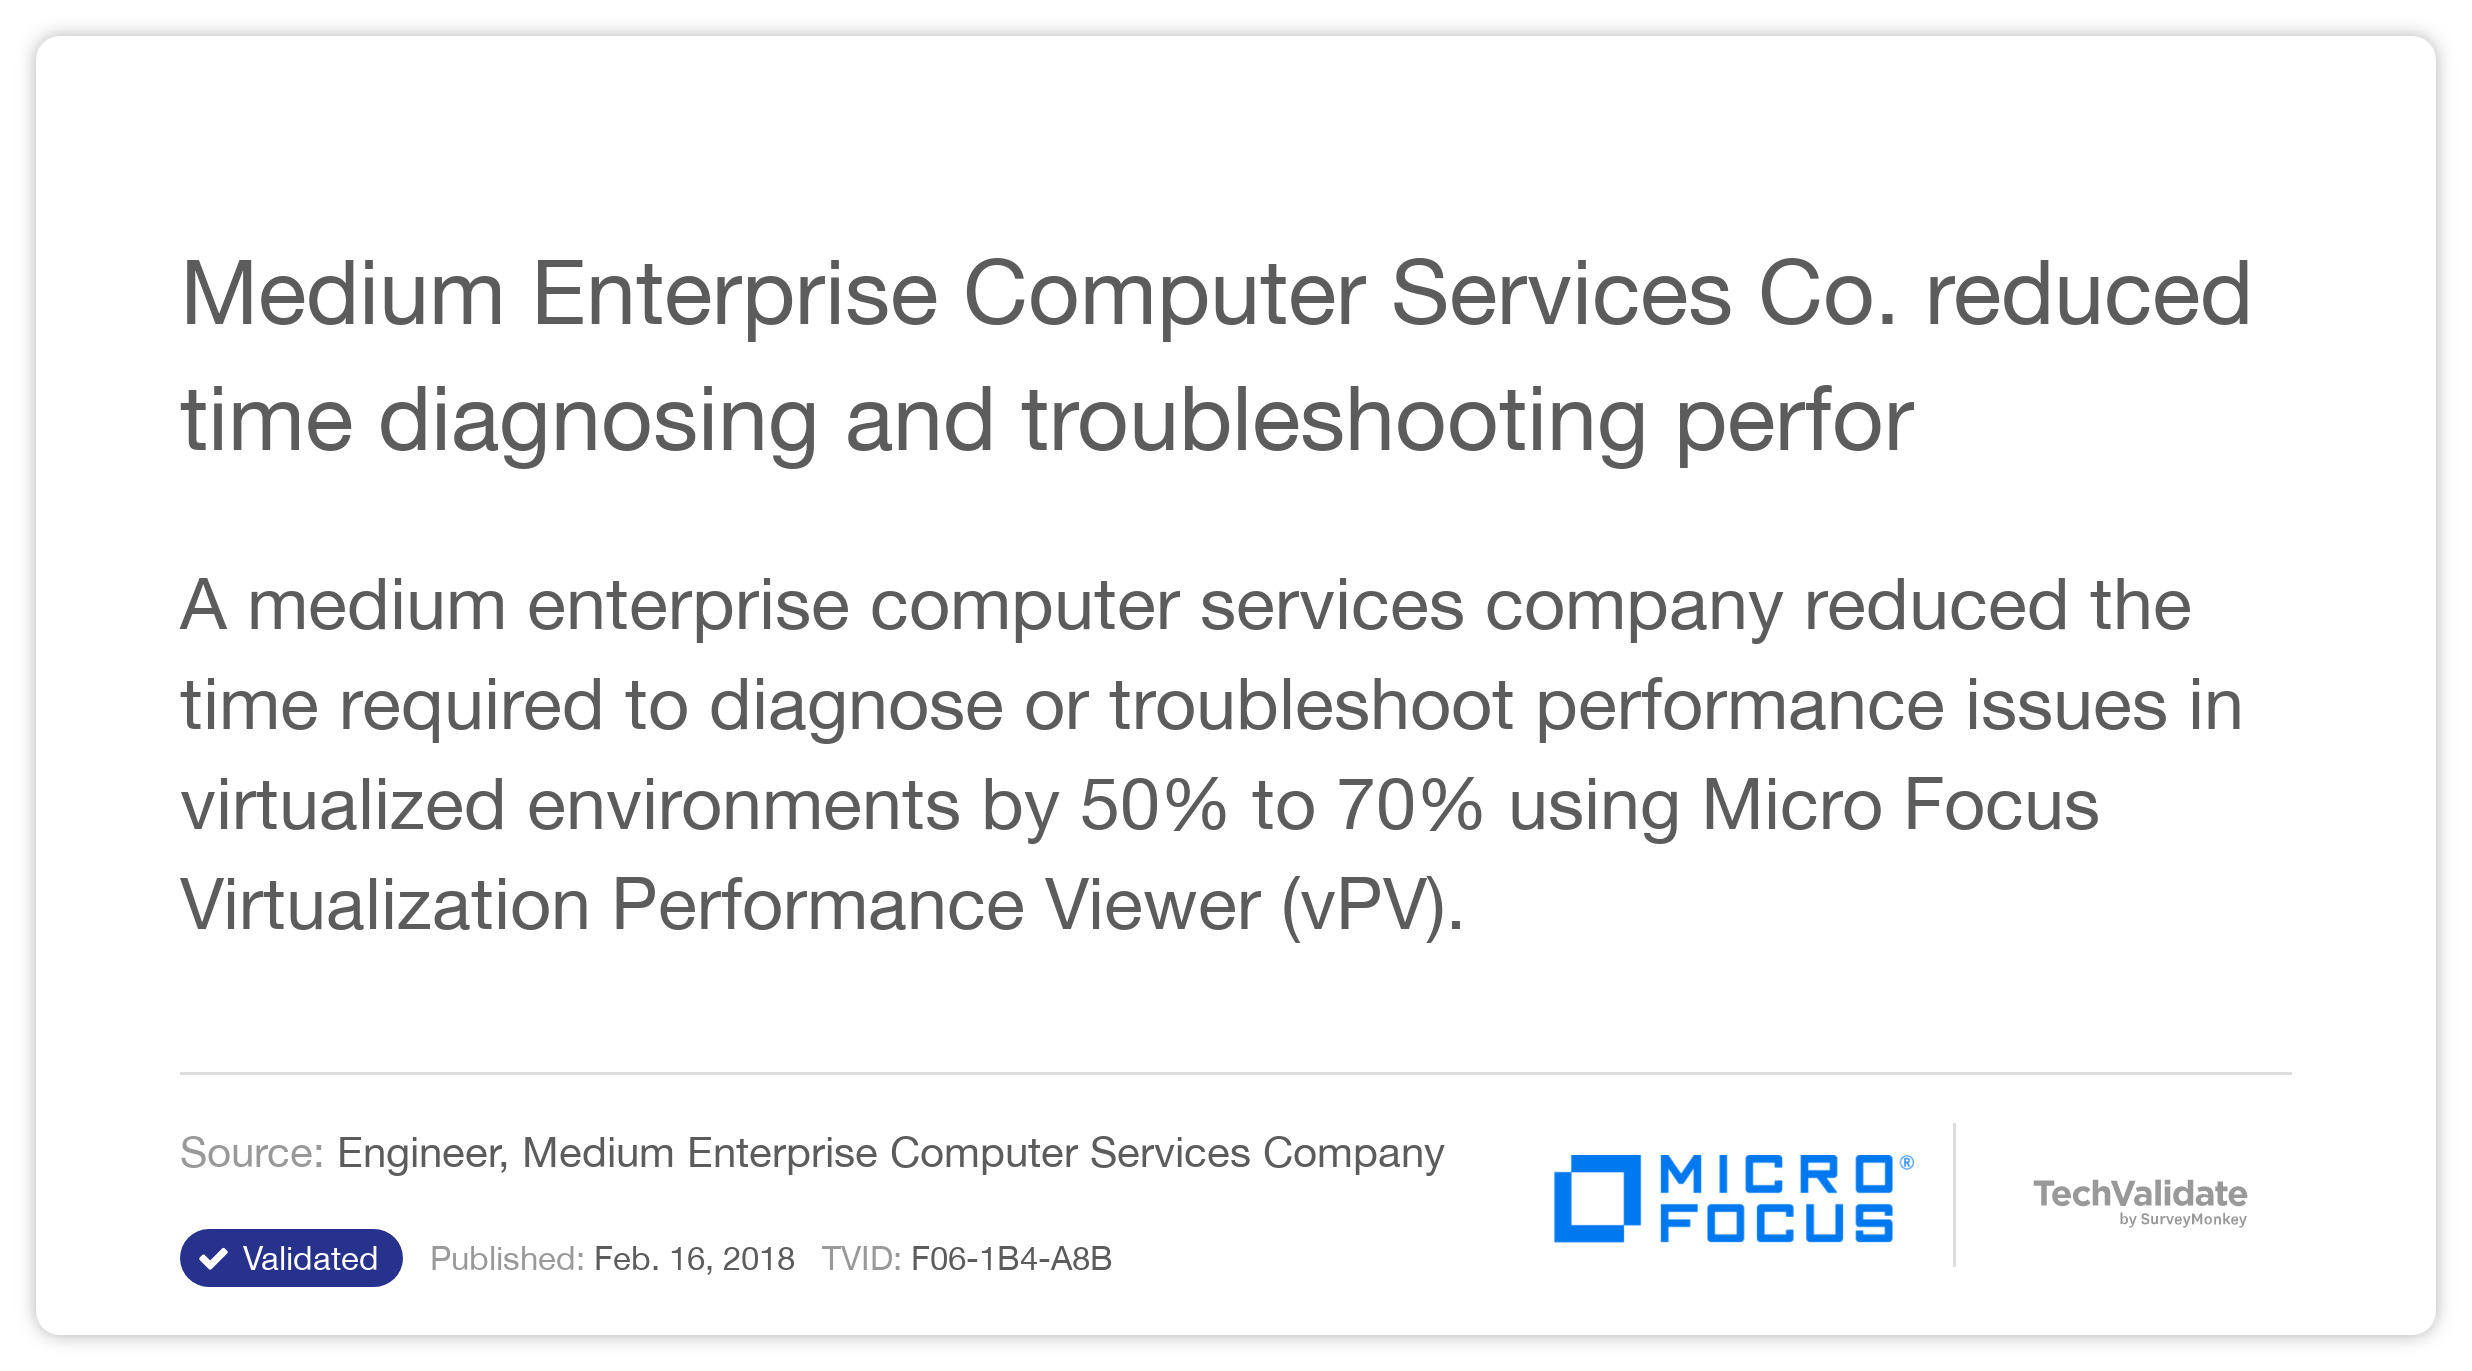 Medium Enterprise Computer Services Co. reduced time diagnosing and troubleshooting performance problems with HP vPV